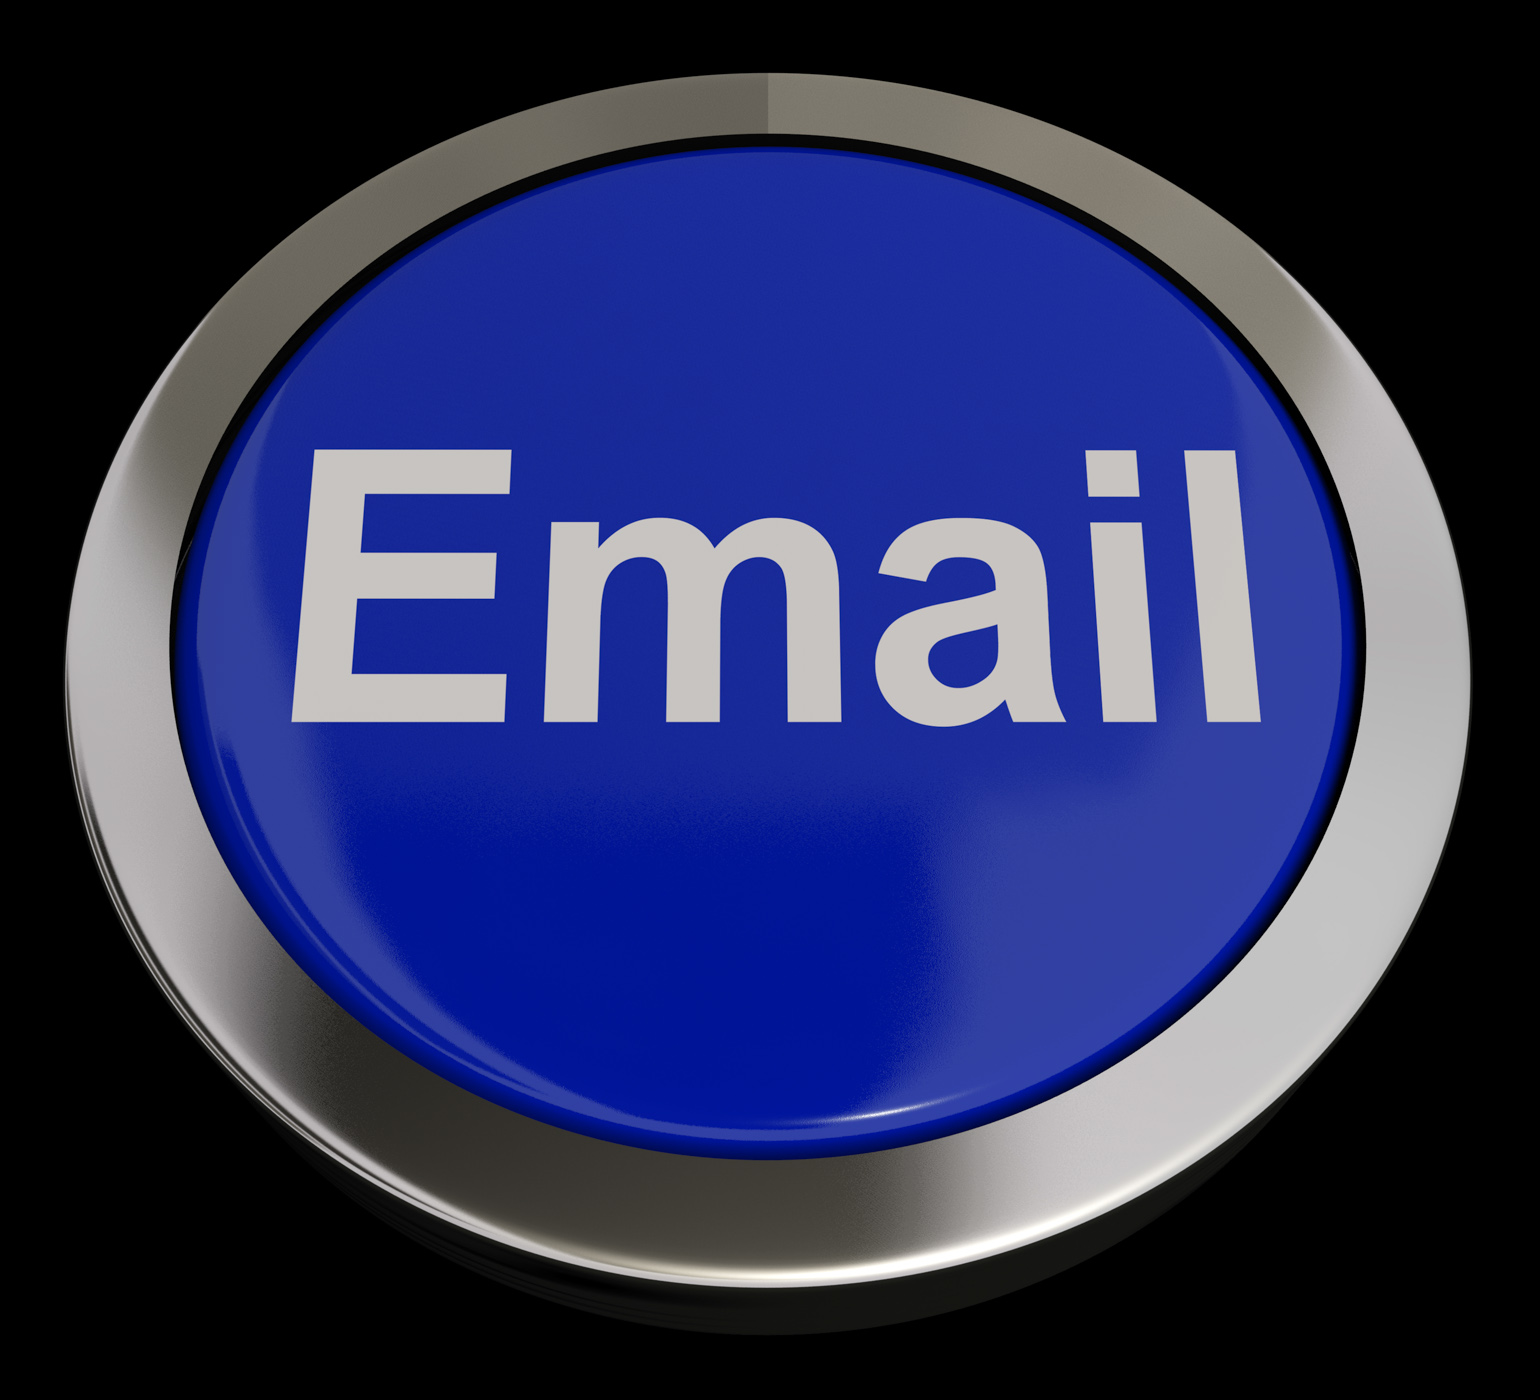 Email Button In Blue For Emailing Or Contacting, Communicate, Mailing, Send, Postal, HQ Photo